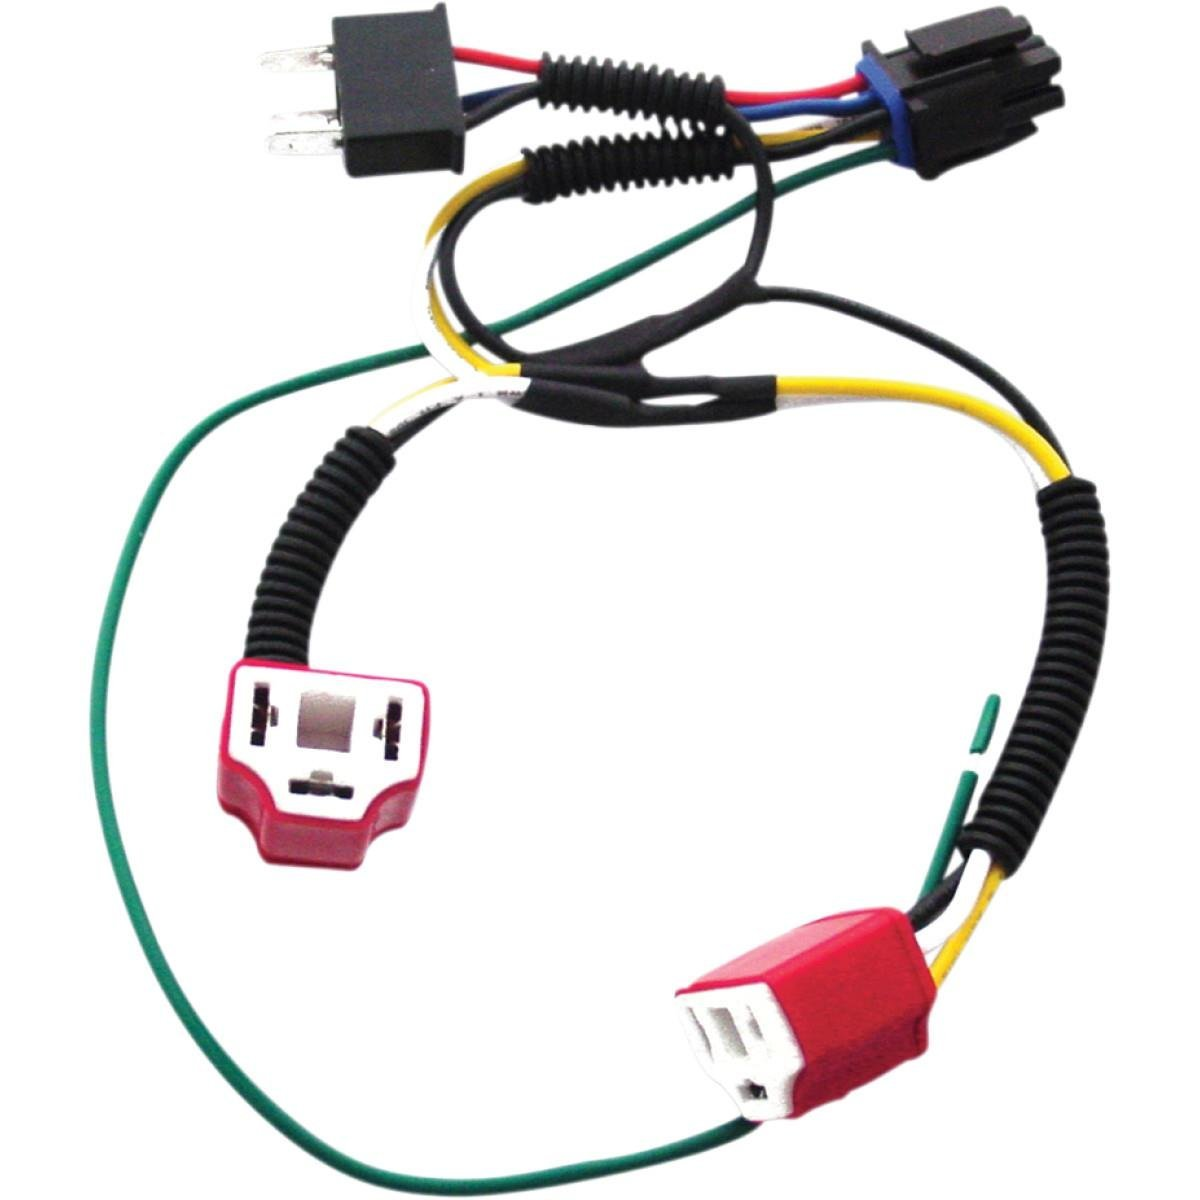 Cheap Wiring Harness For Headlight, find Wiring Harness For ... on h3 wiring harness, h2 wiring harness, c3 wiring harness, h8 wiring harness, h13 wiring harness, t3 wiring harness, f1 wiring harness, h11 wiring harness, drl wiring harness, hr wiring harness, g9 wiring harness, b2 wiring harness, h1 wiring harness, ipf wiring harness, h15 wiring harness, e2 wiring harness, h22 wiring harness, s13 wiring harness, h7 wiring harness,